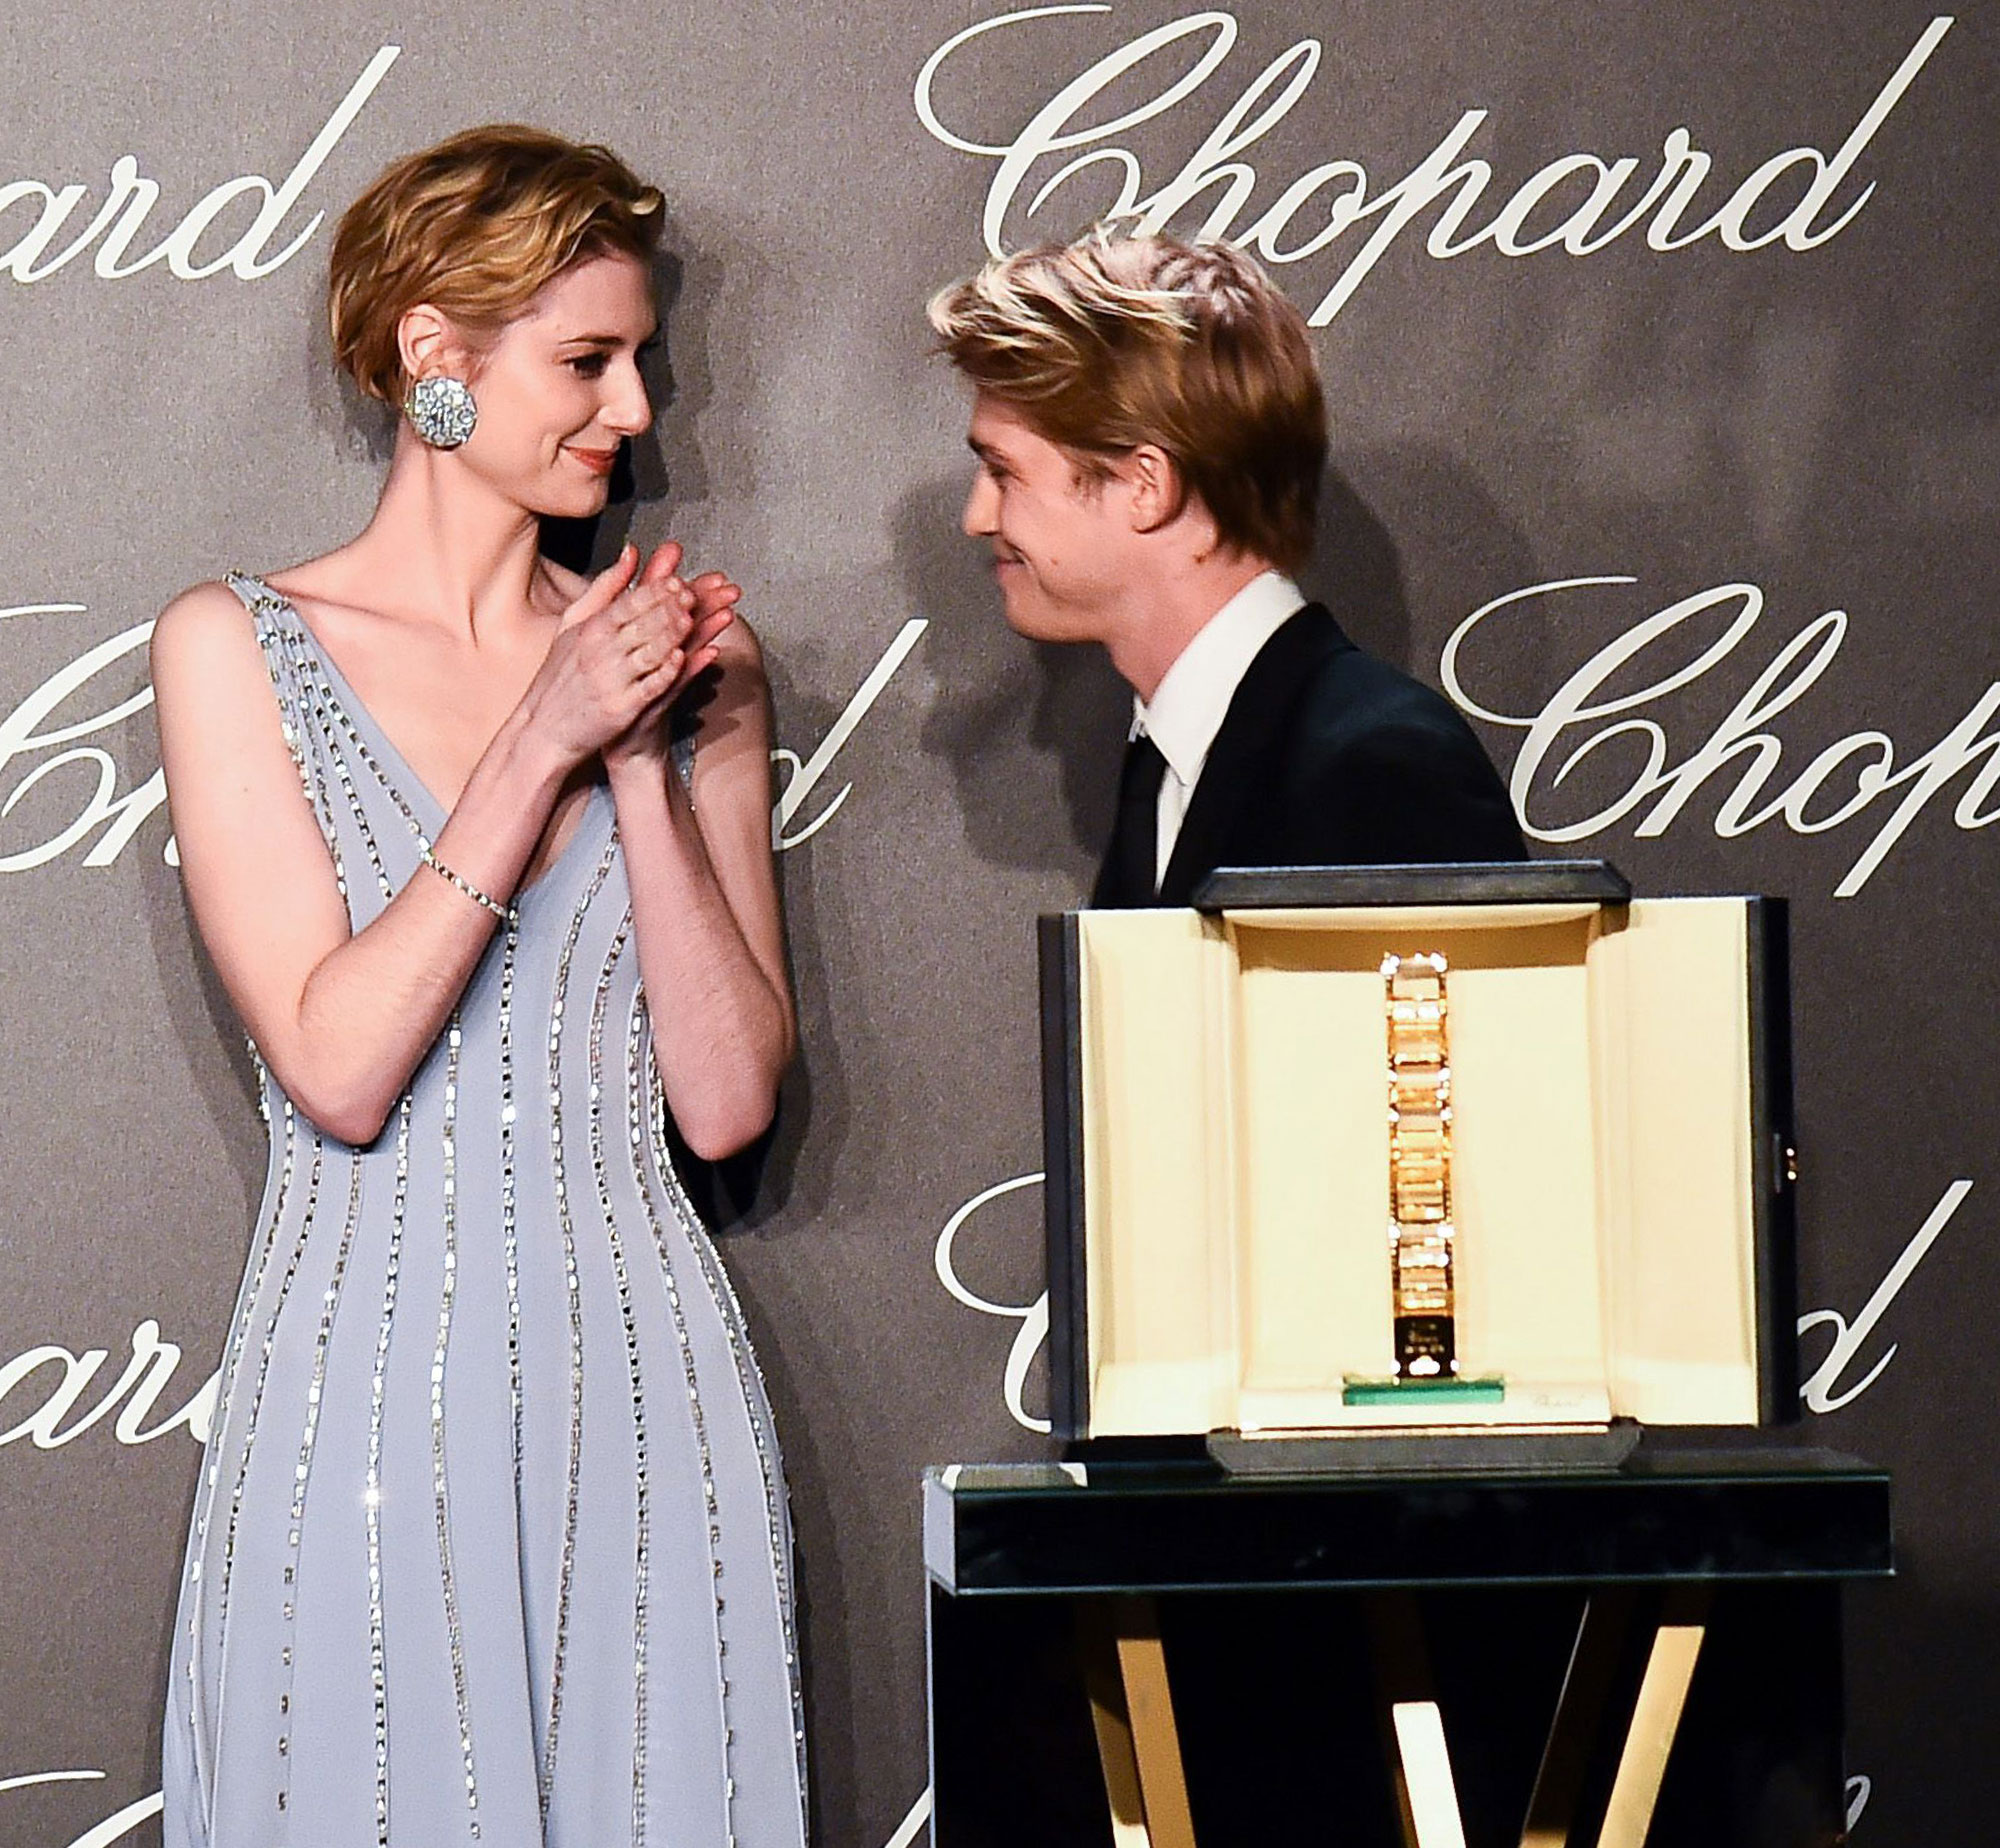 Trophee Chopard ceremony, 71st Cannes Film Festival, France - 14 May 2018